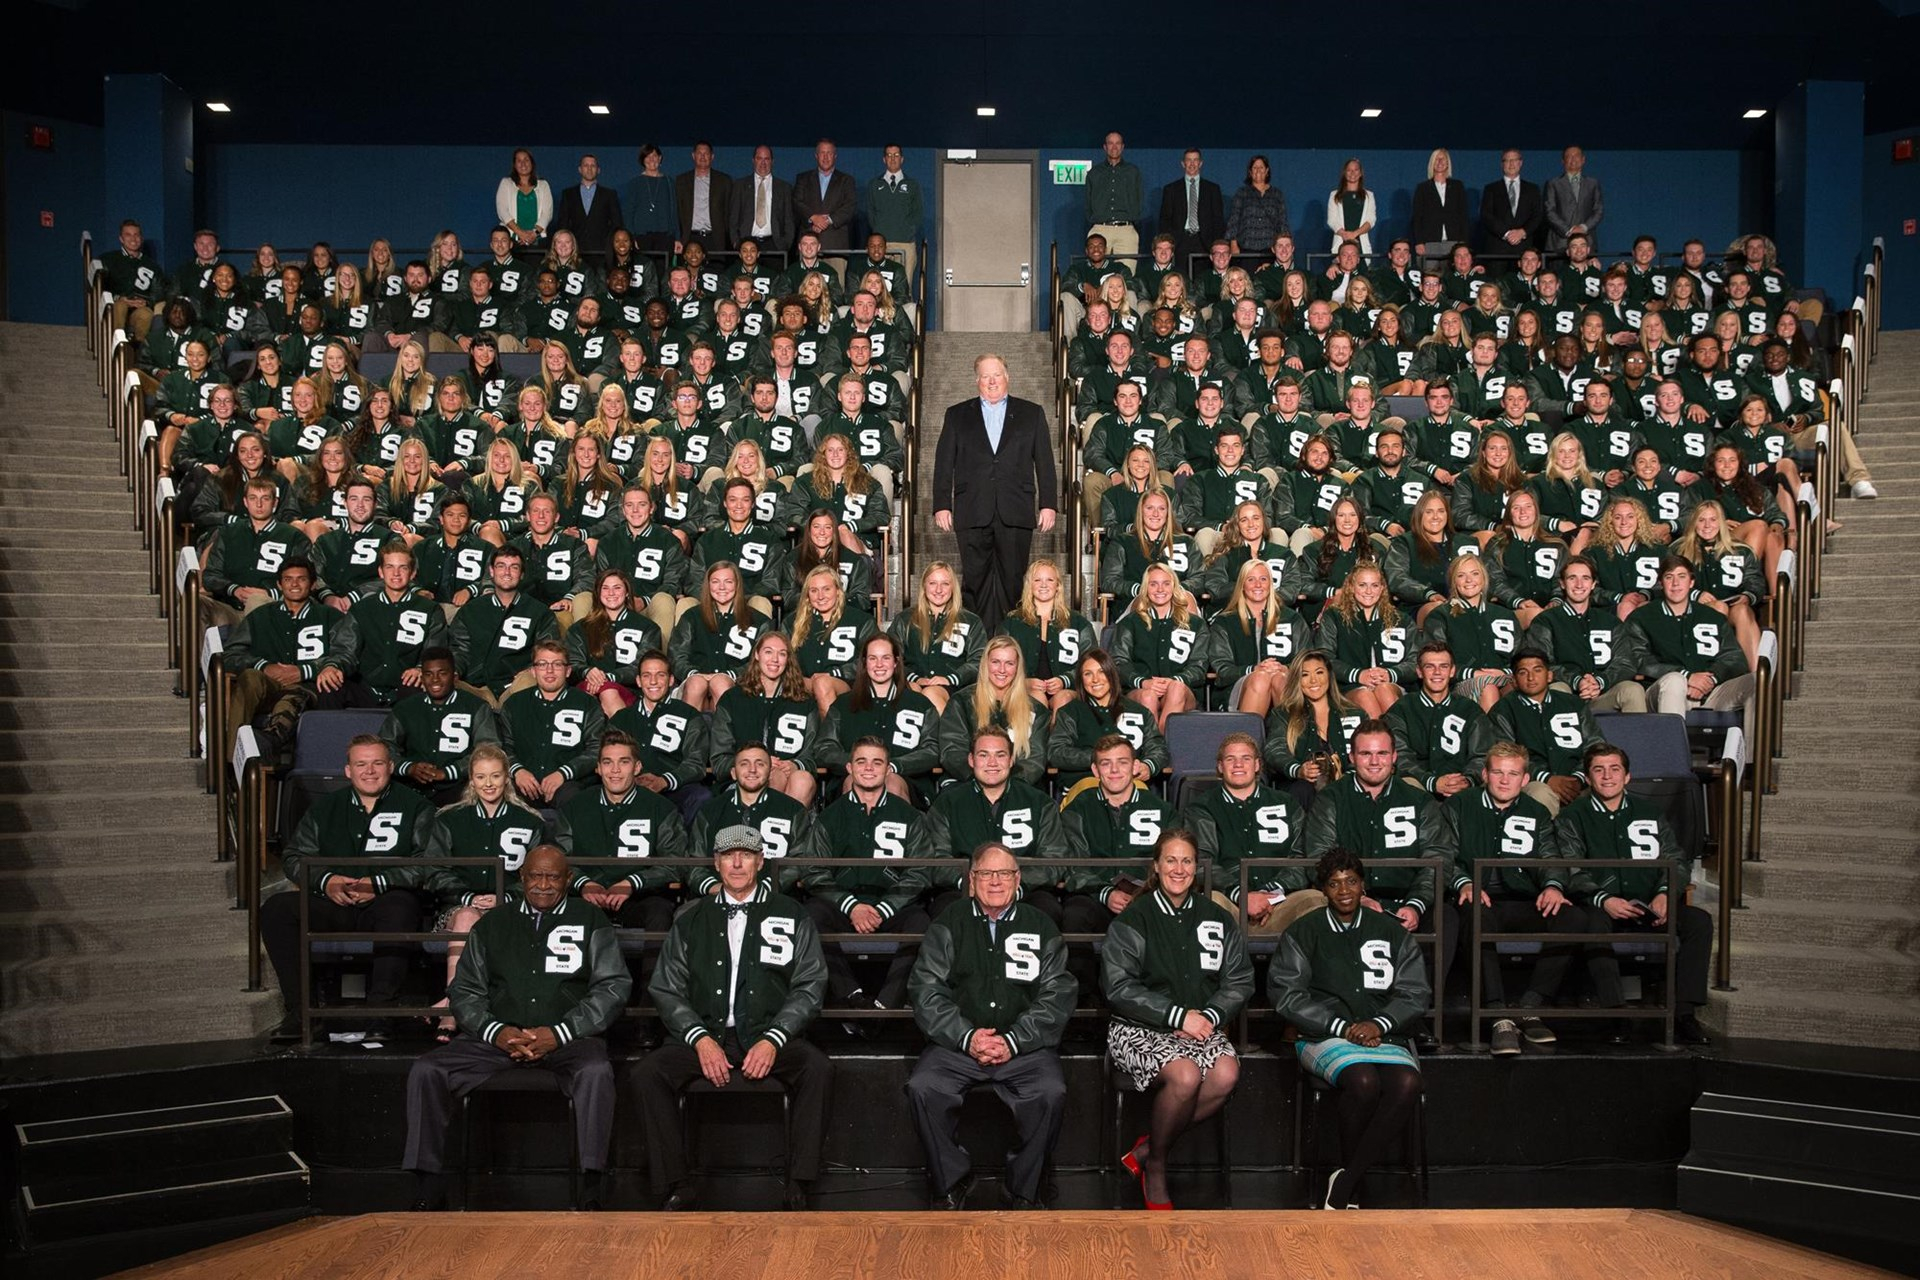 Michigan State history to celebrate and copy